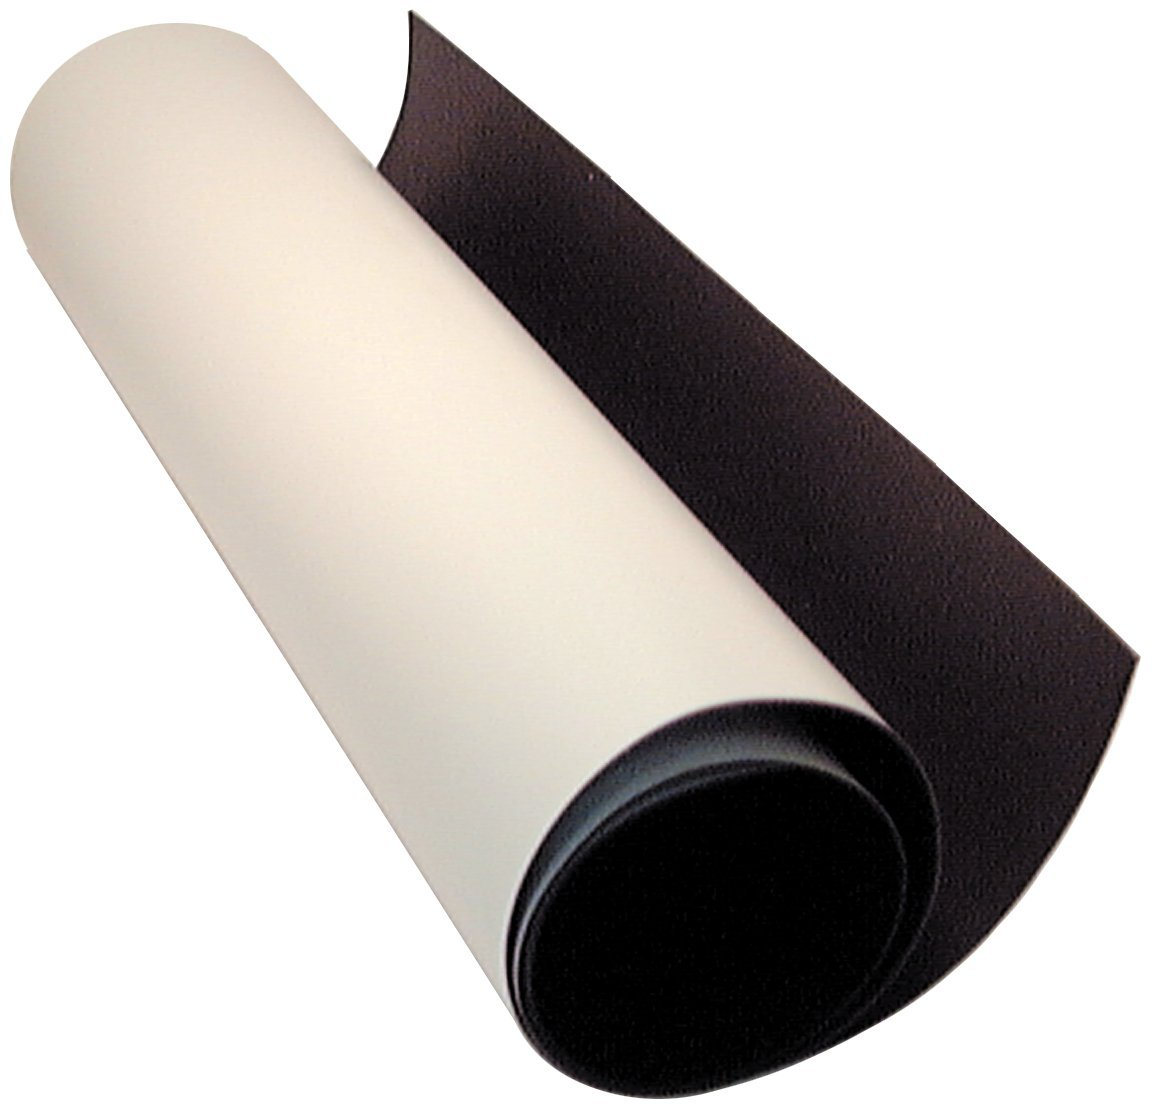 MAG-MATE MRS030X2437X001 Flexible Magnet Sheets 0.030 x 24.37 x 1', White Industrial Magnetics Inc